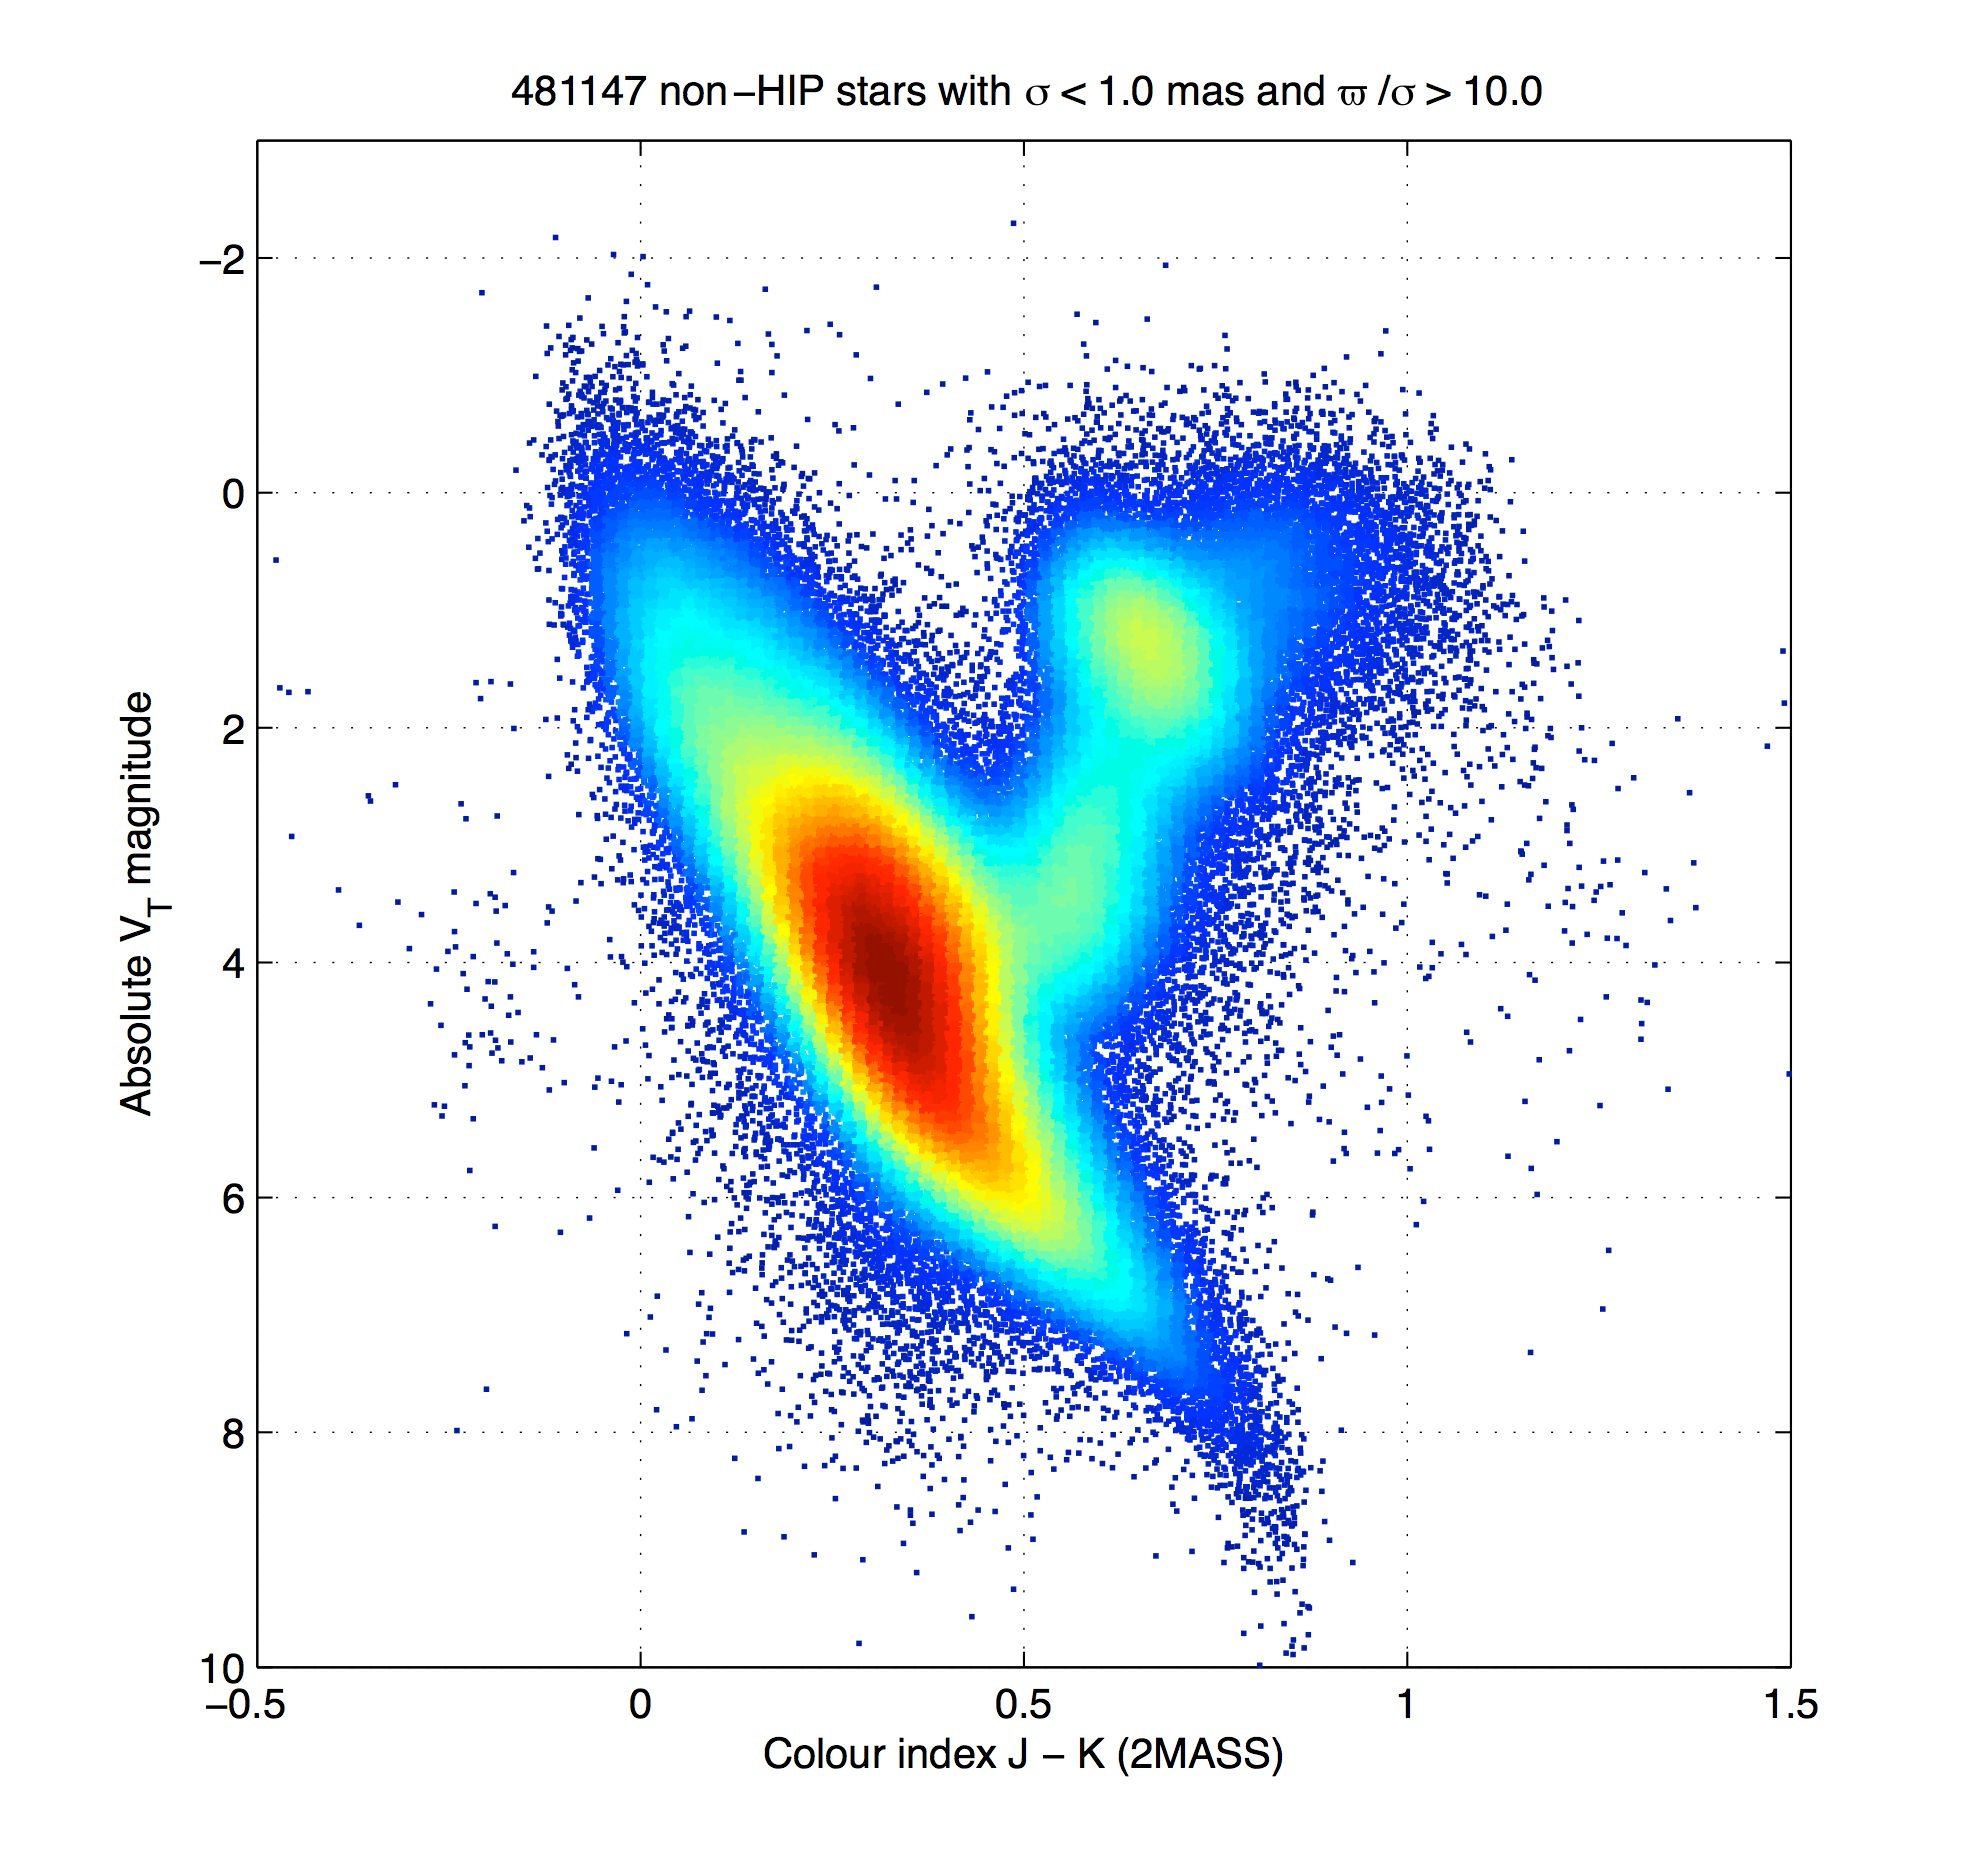 News20150807 cosmos the hertzsprung russell hr diagrams presented here were produced as part of a first validation of the astrometric capabilities of the instrument and of pooptronica Choice Image